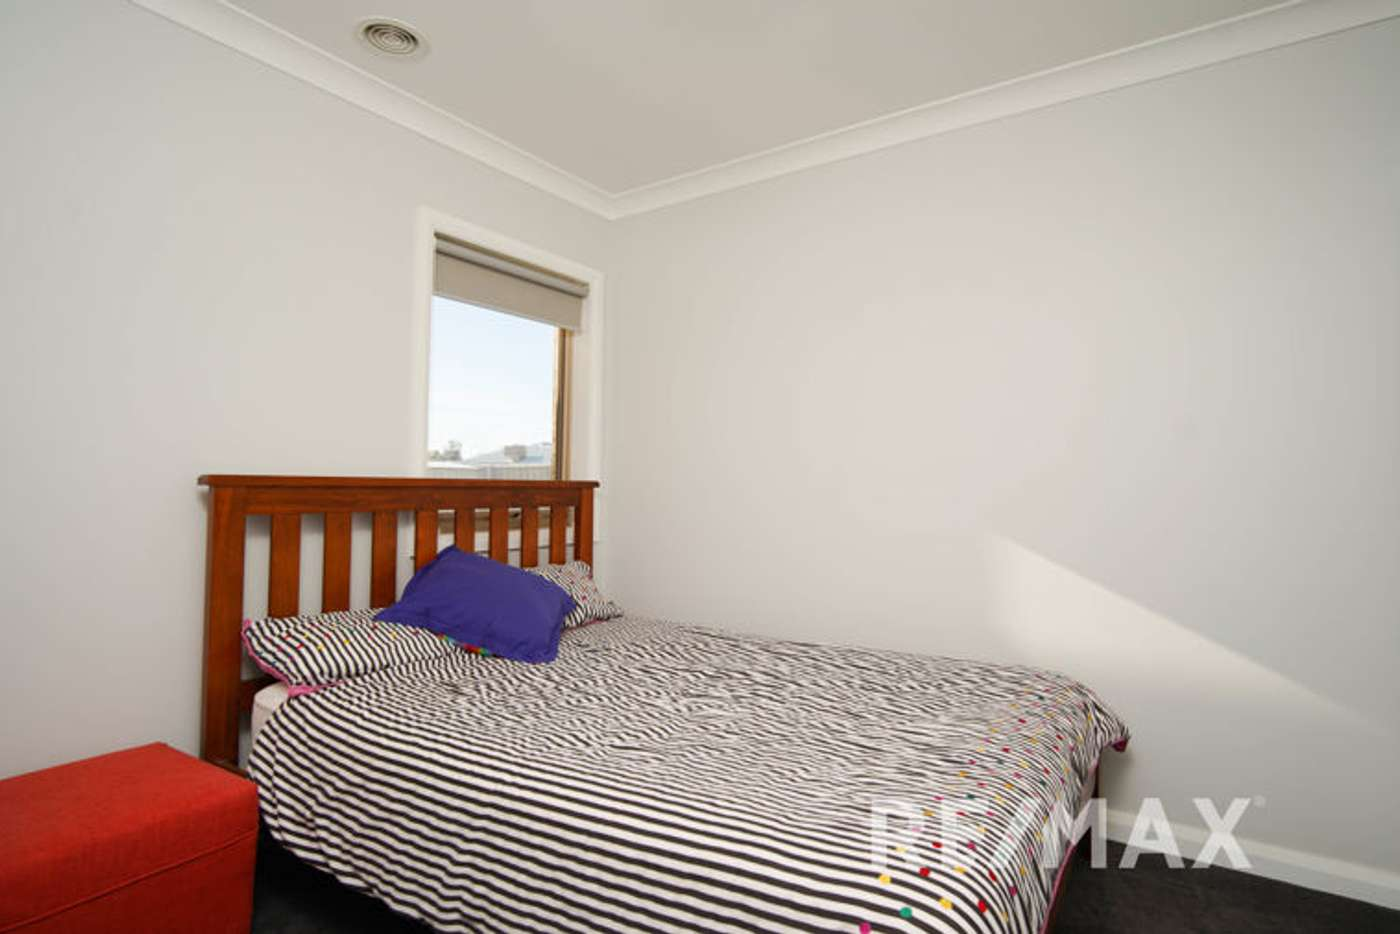 Seventh view of Homely house listing, 1 Mulberrygong Court, Gobbagombalin NSW 2650